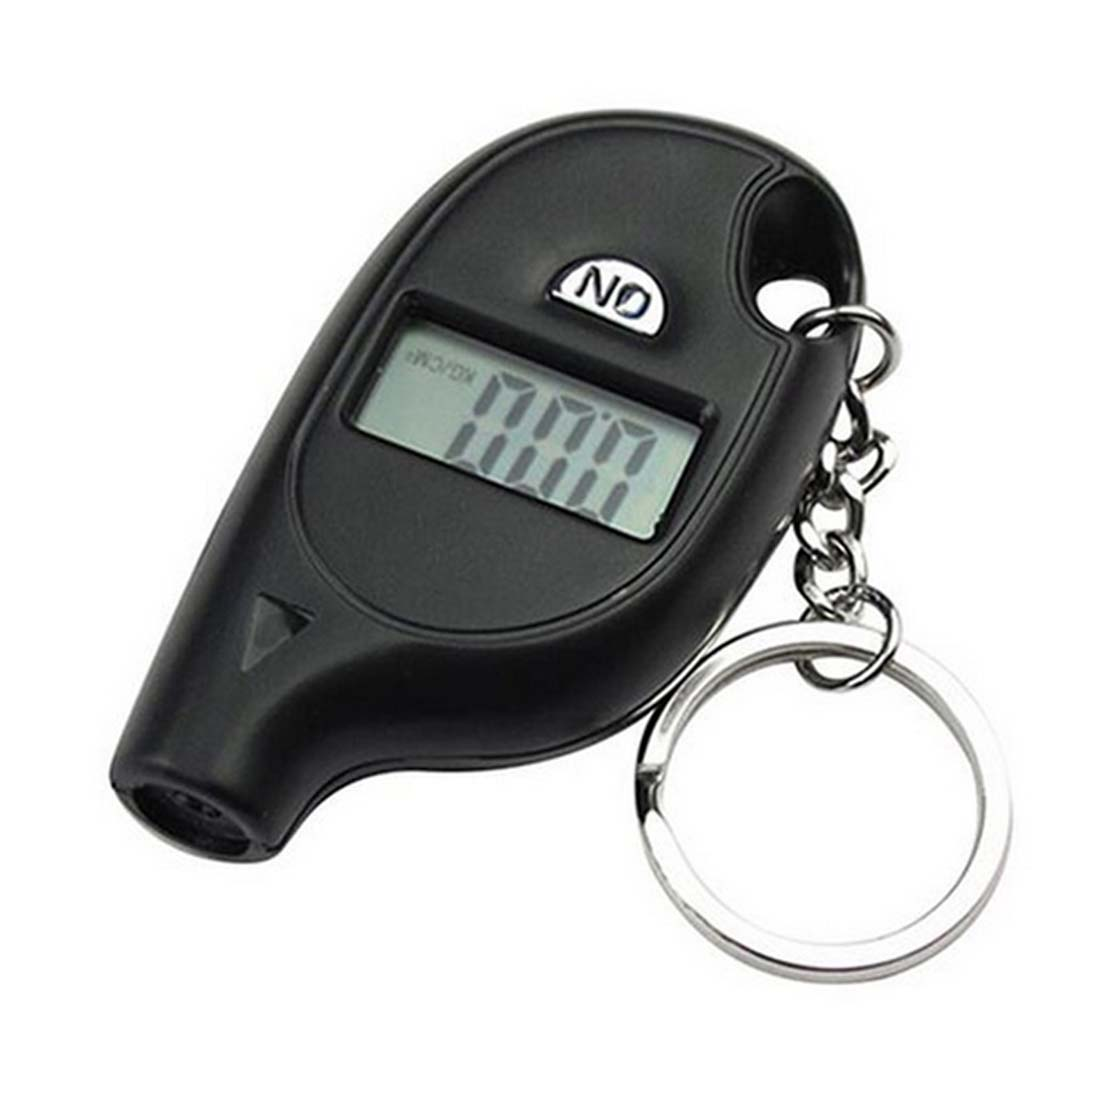 LCD Digital Display Tester 2-150PSI Diagnostic Tool Air Pressure Tire Plastic Vehicle Motorcycle For Car Tester Top Sell